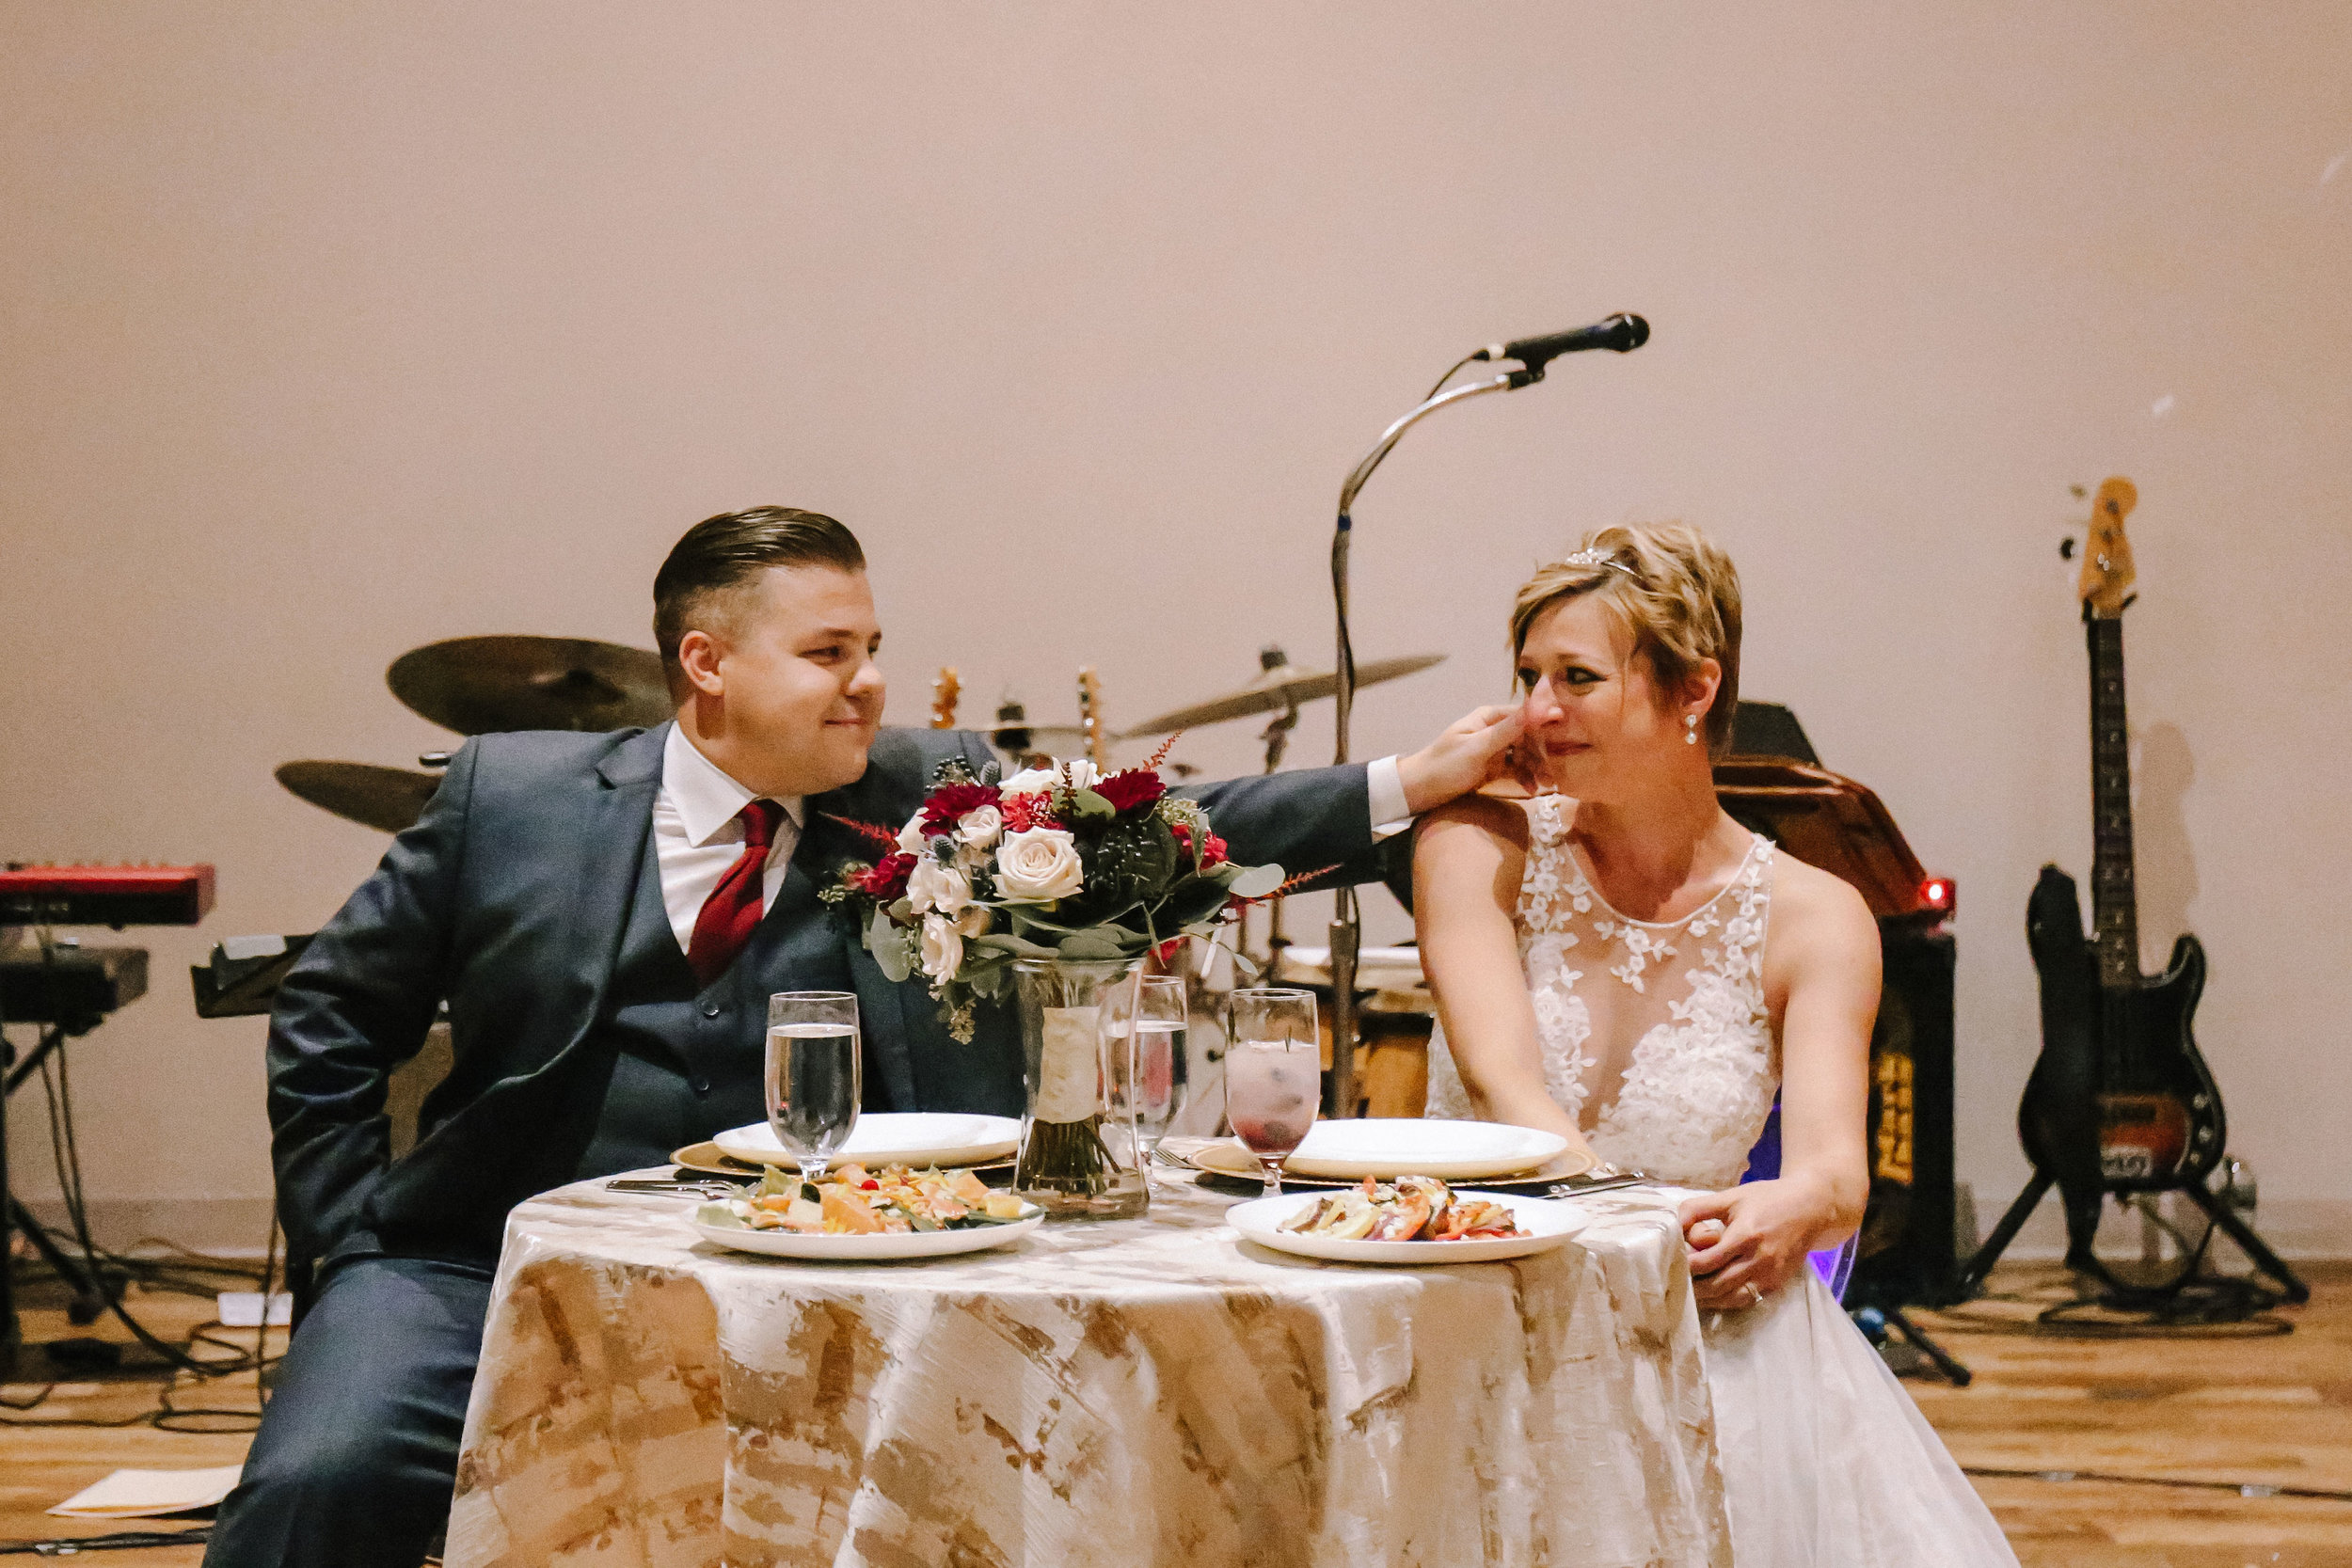 Bride and groom at wedding sweetheart table for Pittsburgh wedding at Studio Slate planned by Exhale Events. Find more wedding inspiration at exhale-events.com!